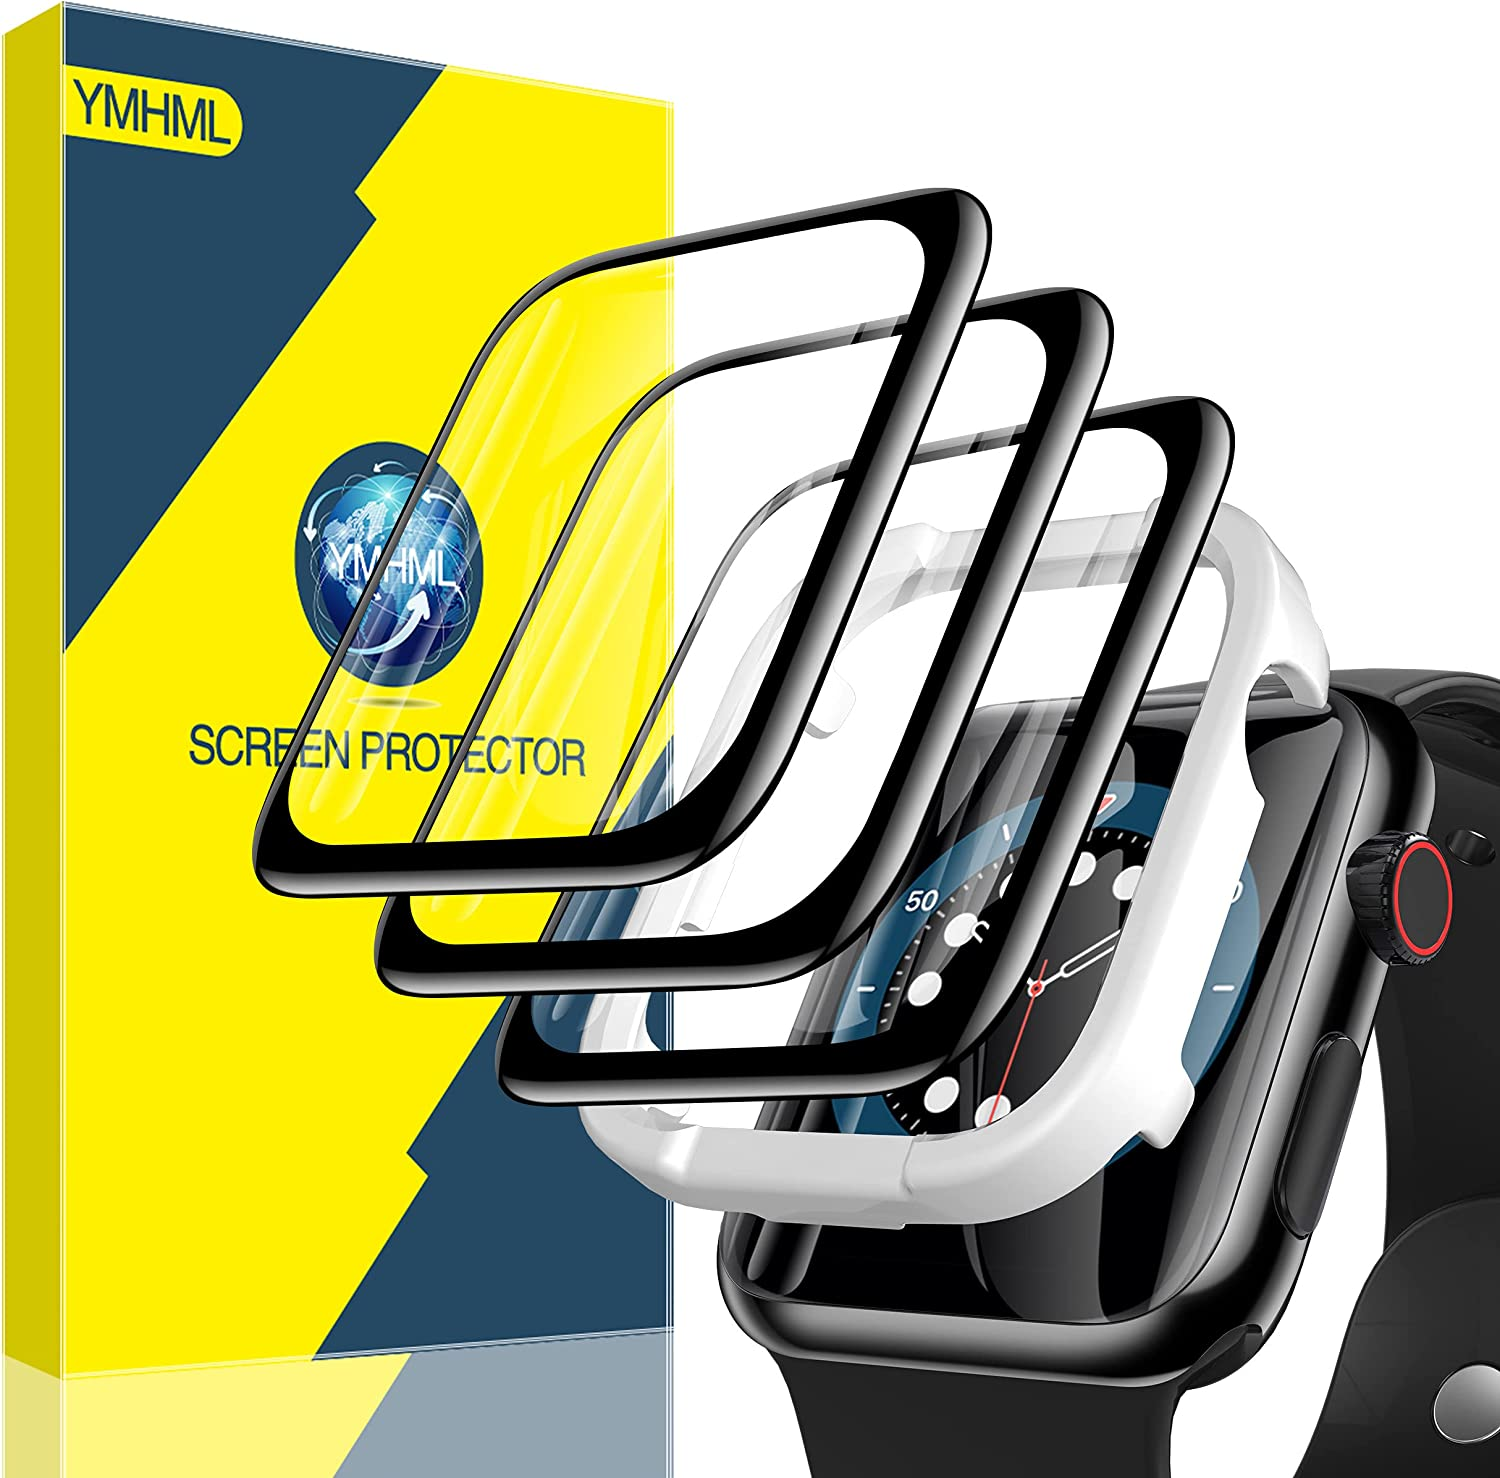 [3 Pack] YMHML Screen Protector Compatible with Apple Watch 44mm SE Series 6/5/4 [Easy Install] Anti-ScratchFull Coverage 3D CurvedEdge Flexible HD Film for iWatch 44mm Accessories (44mm, Black egde)